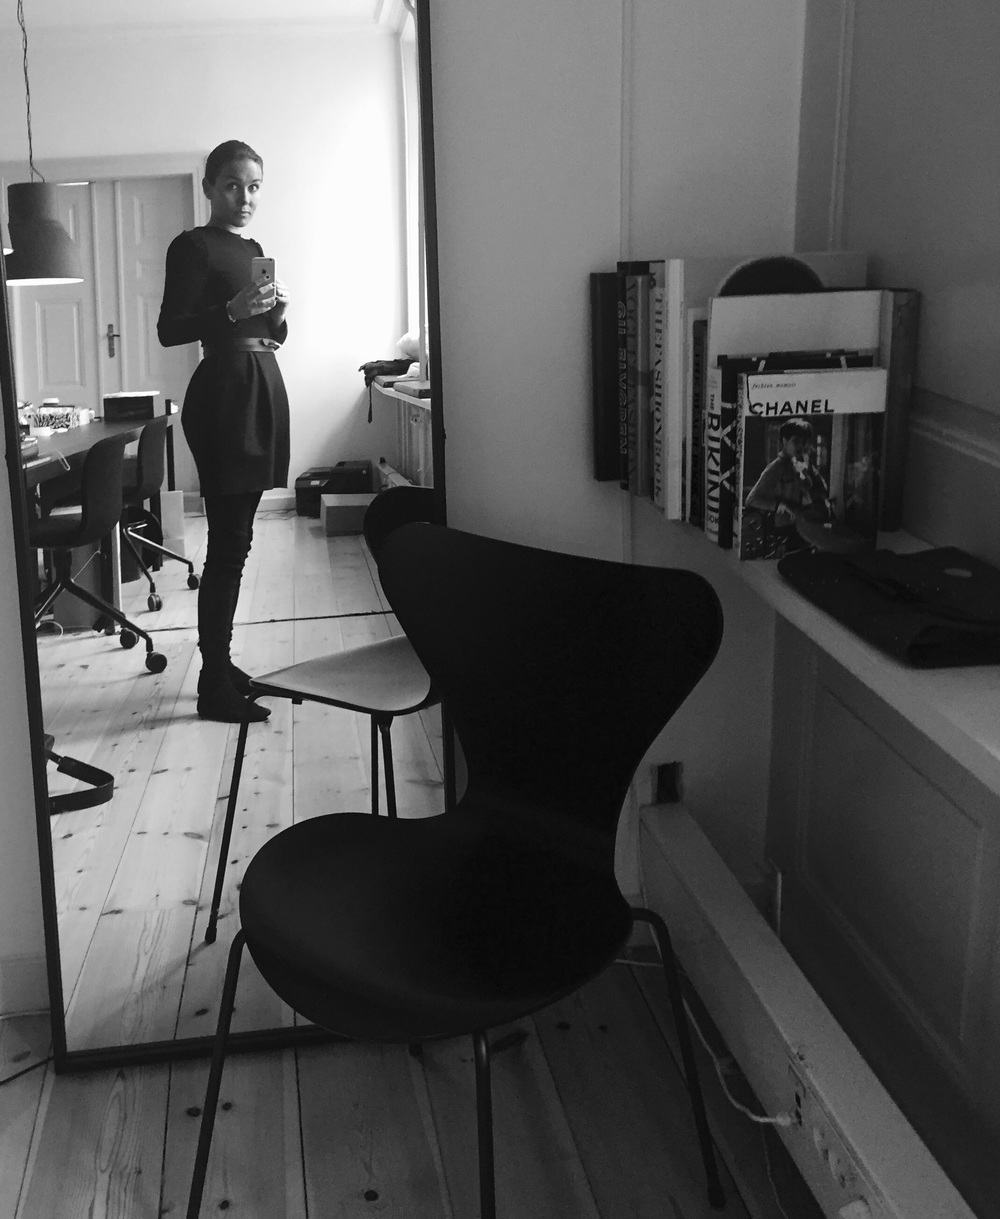 Dress by other stories, chair by Arne Jacobsen, mirror by Broste